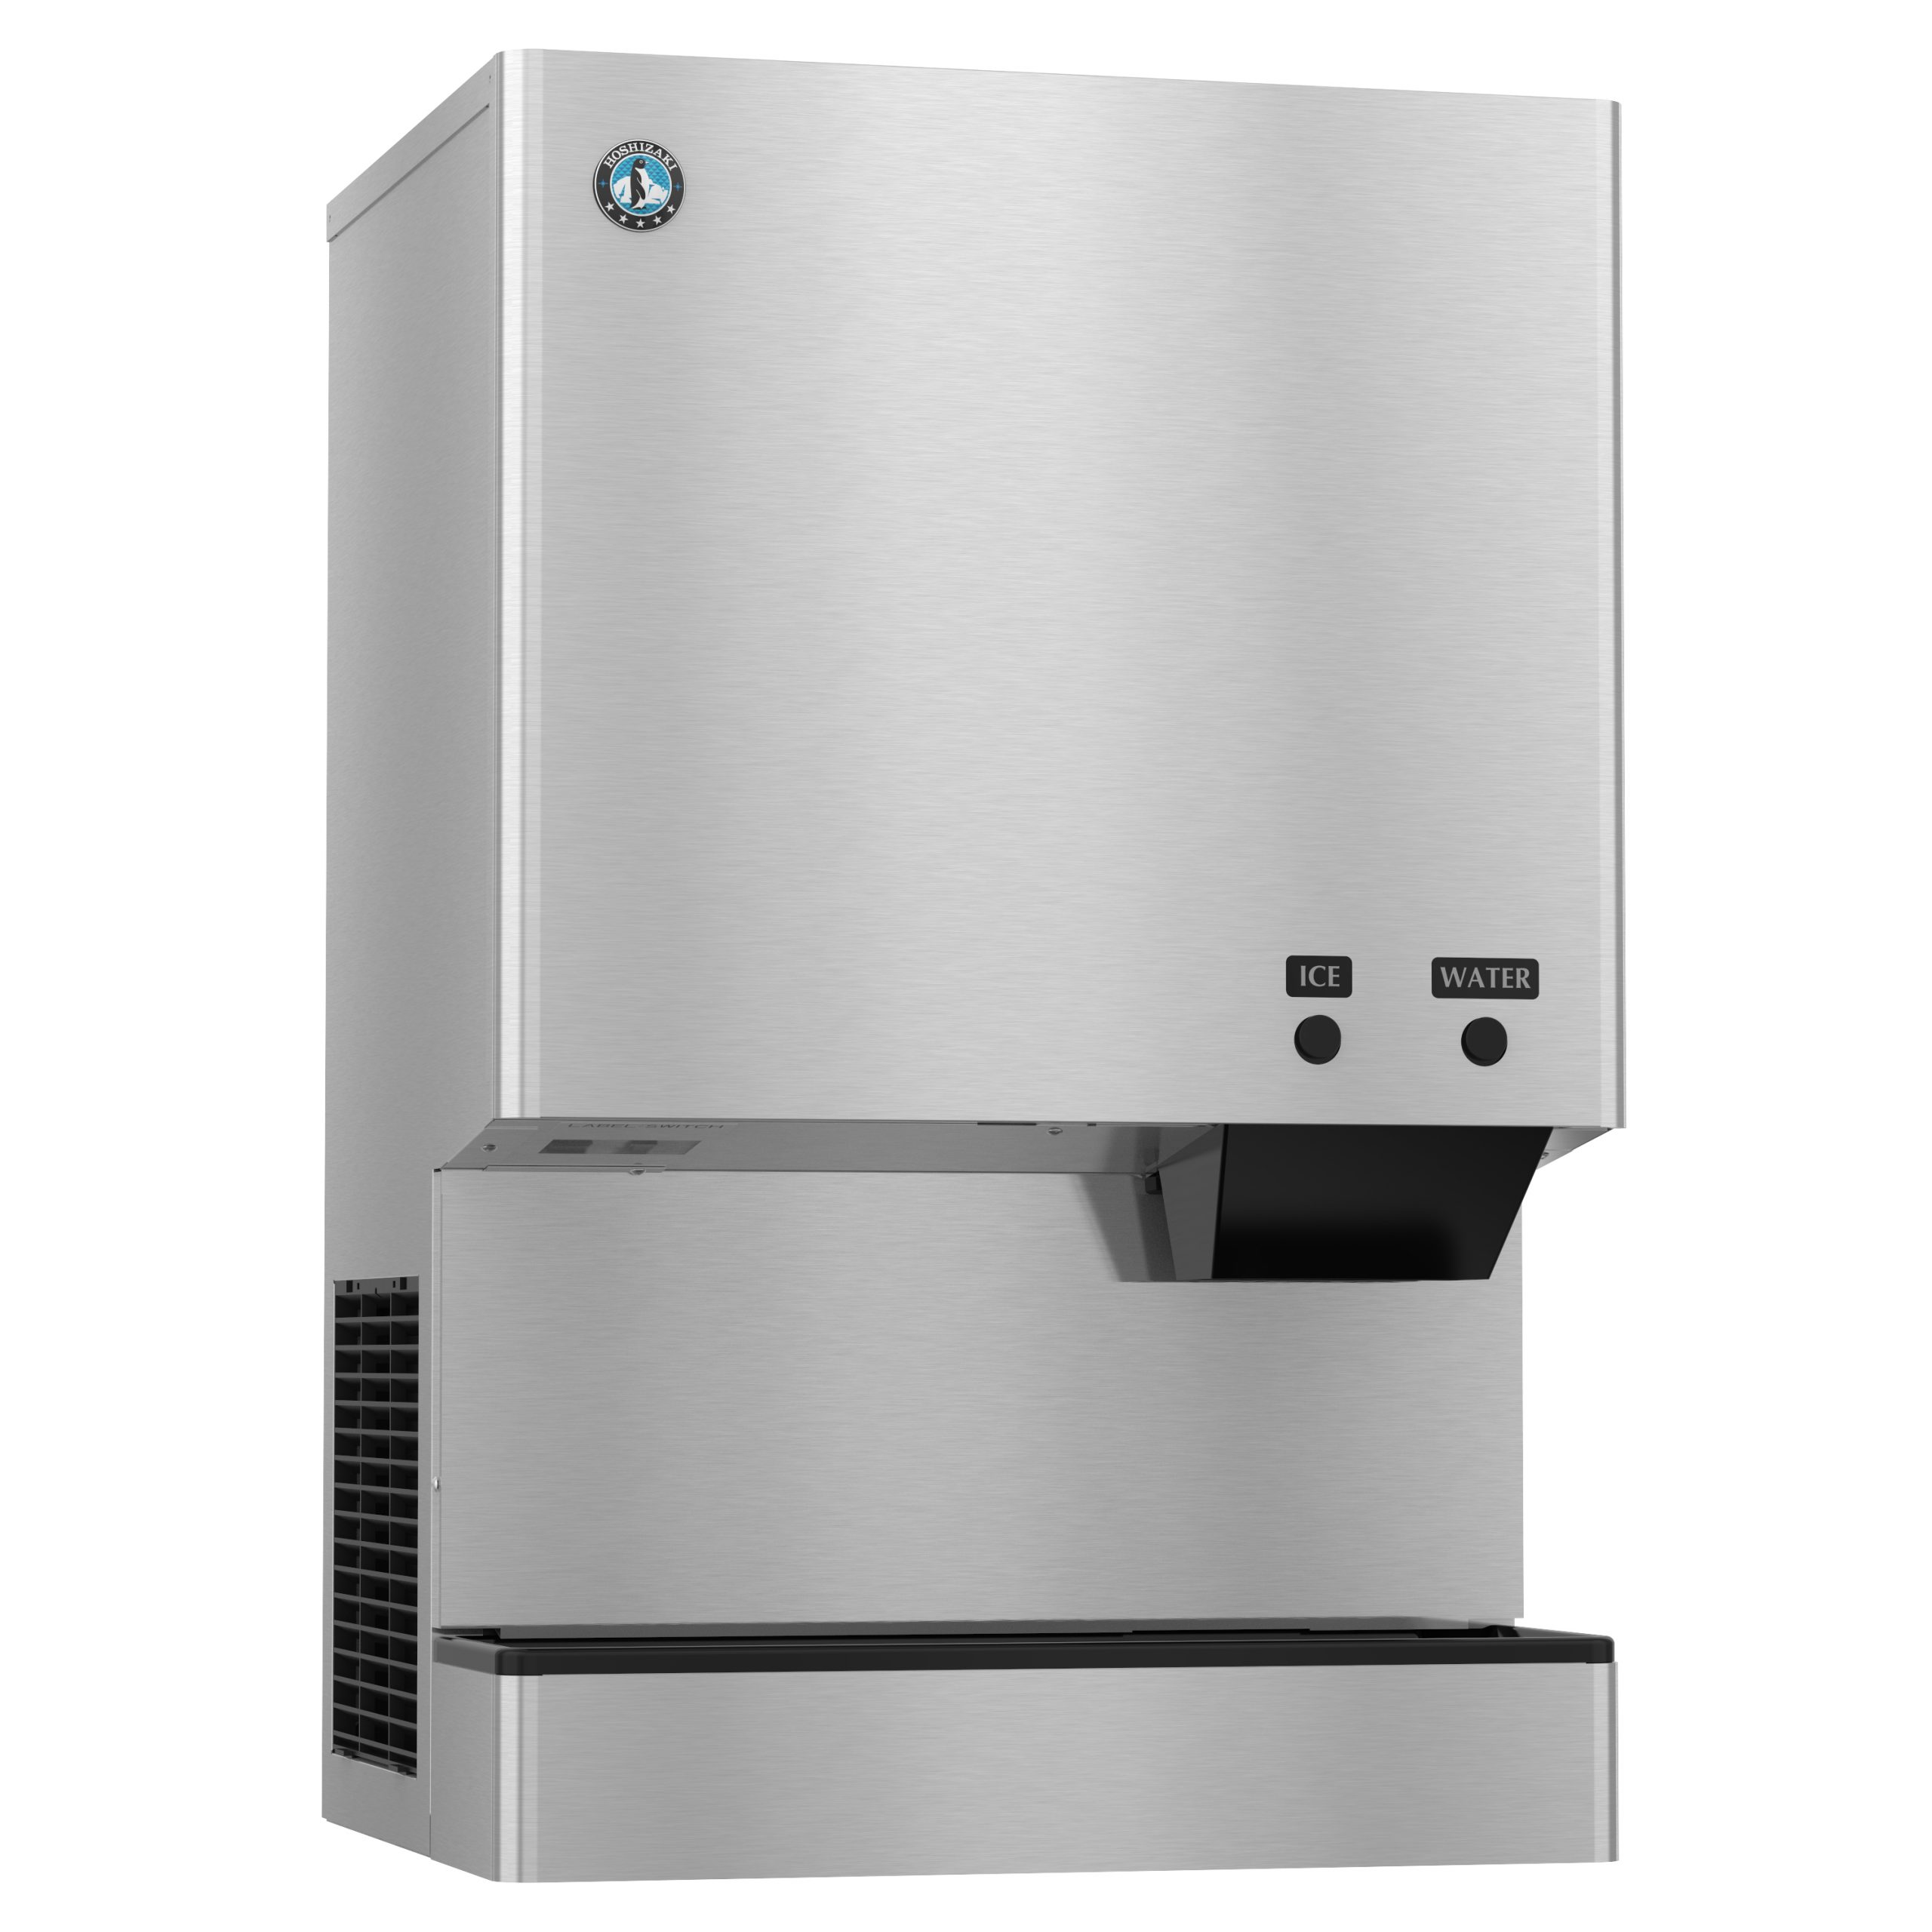 DCM-300BAH Ice Machines More Than Water